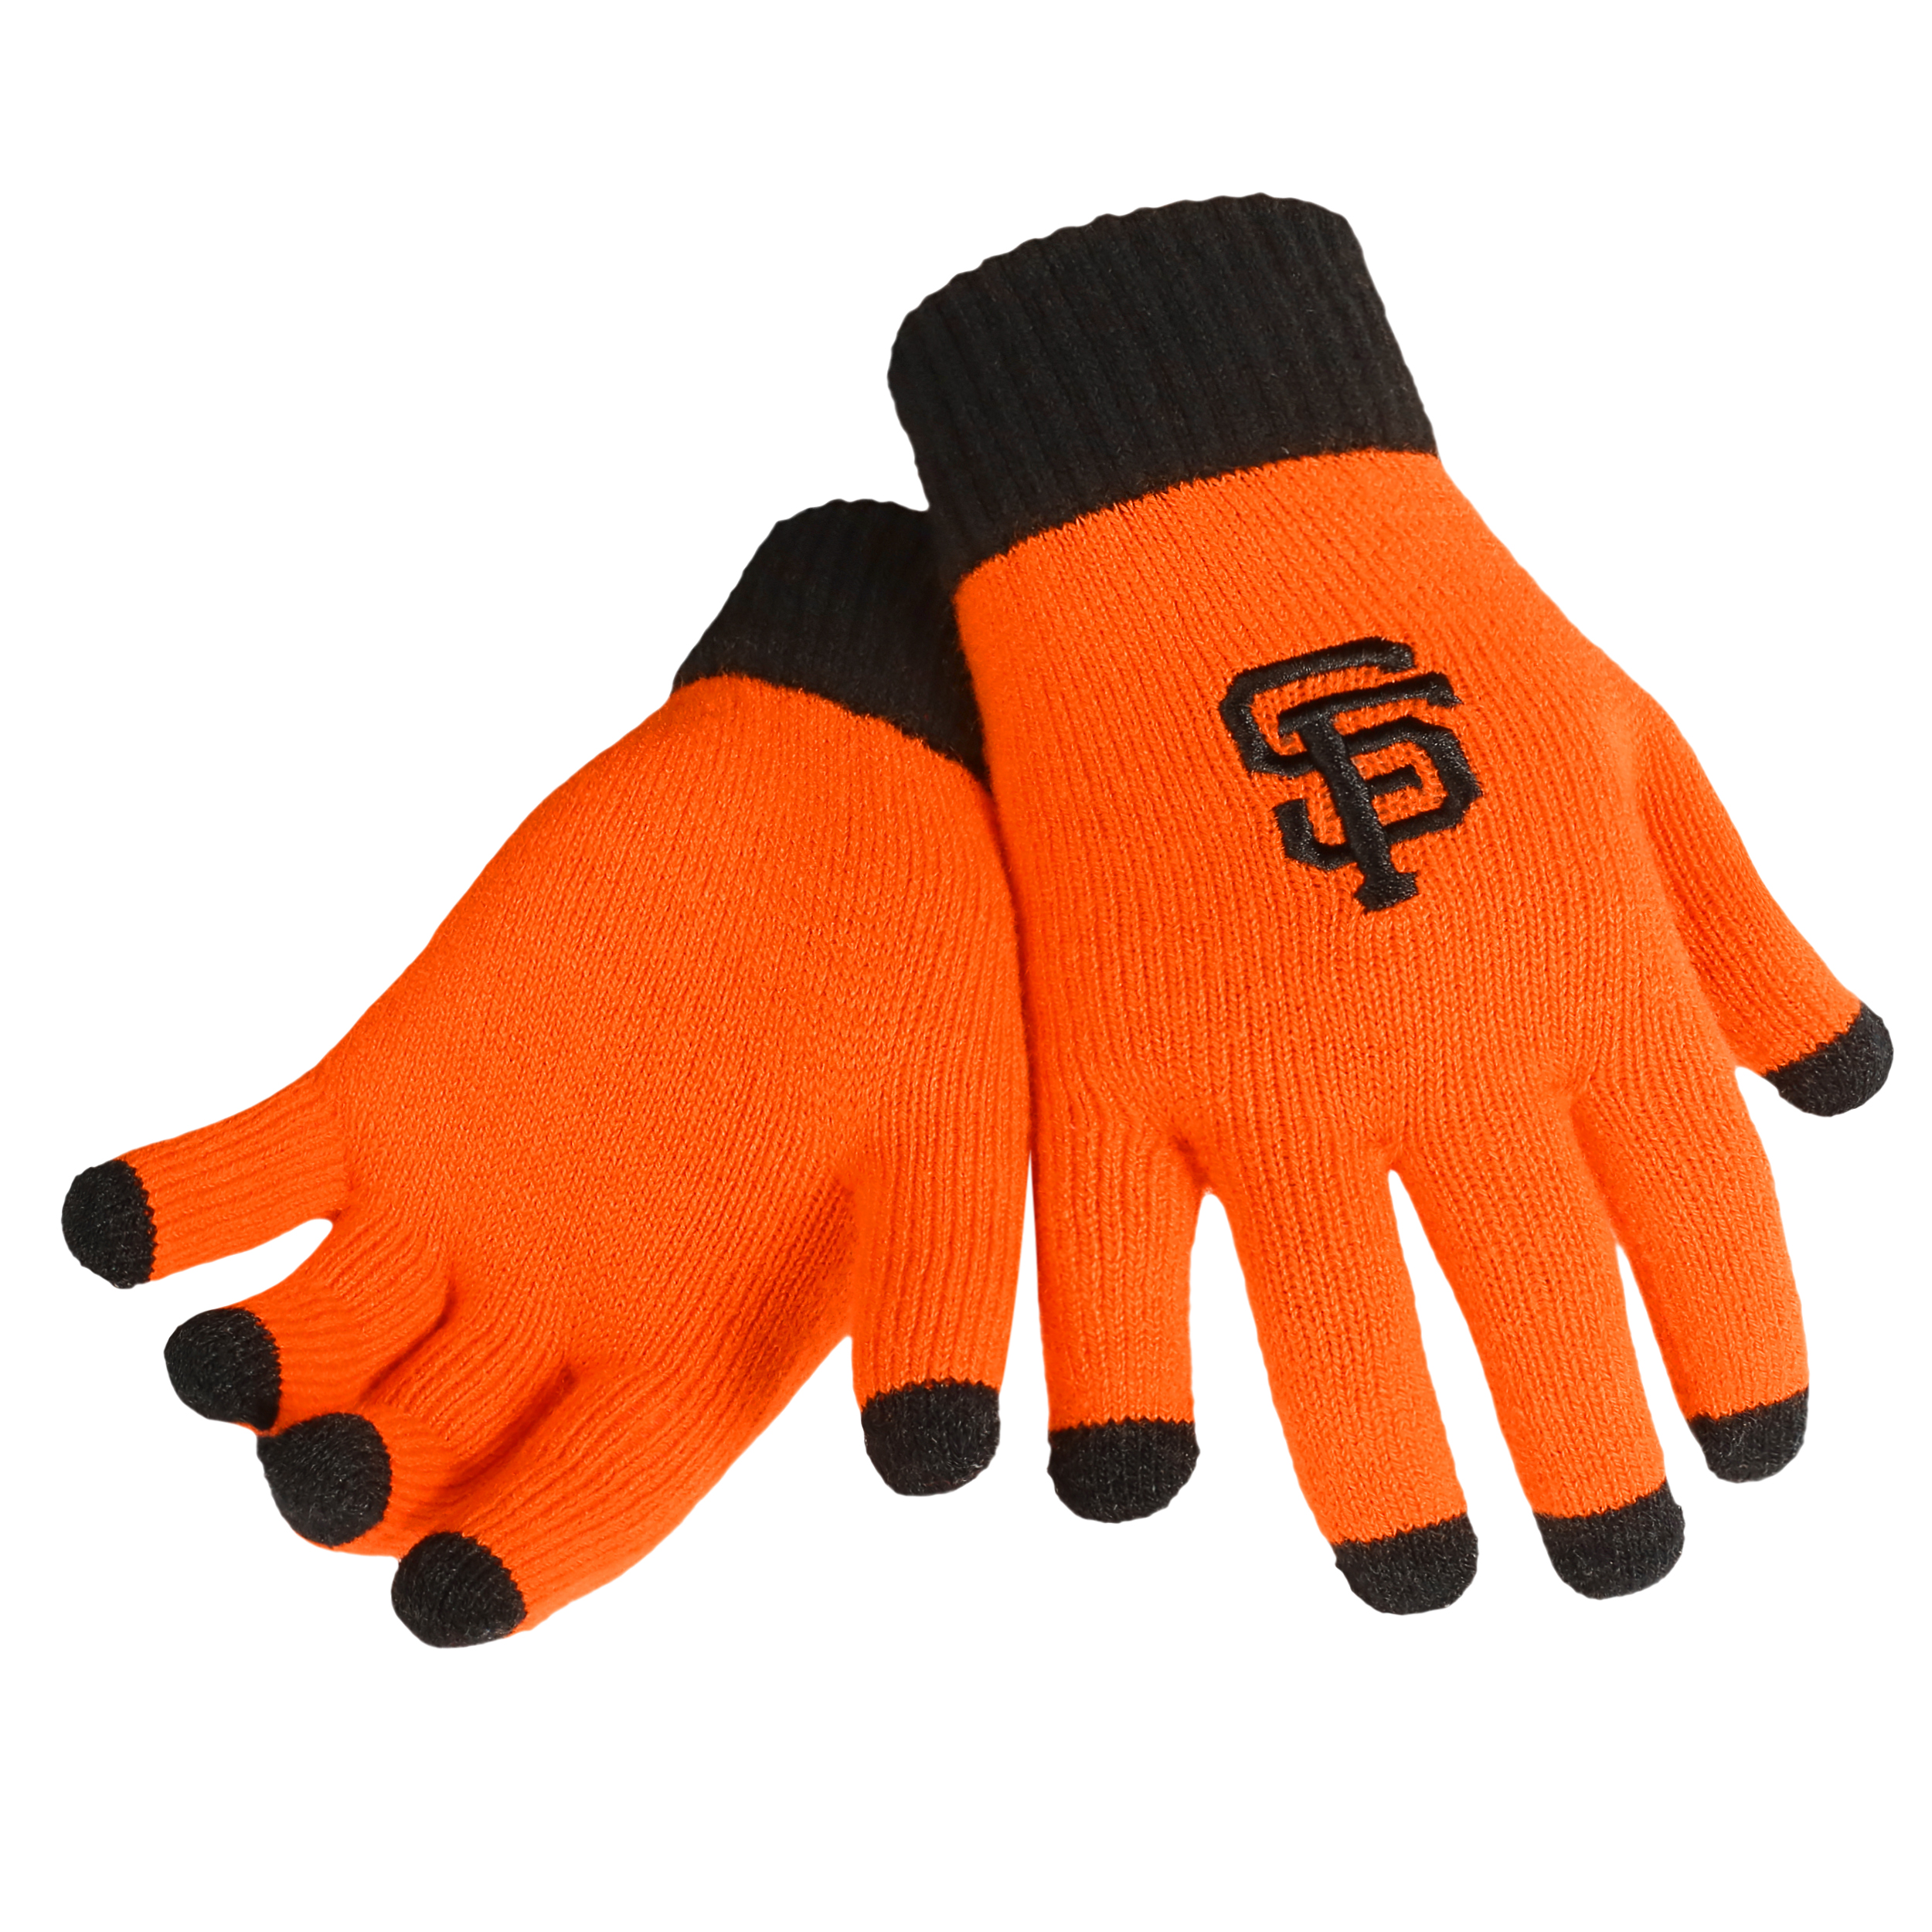 San Francisco Giants Official MLB Glove Solid Outdoor Winter Stretch Knit by Forever Collectibles 262190 by Forever Collectibles